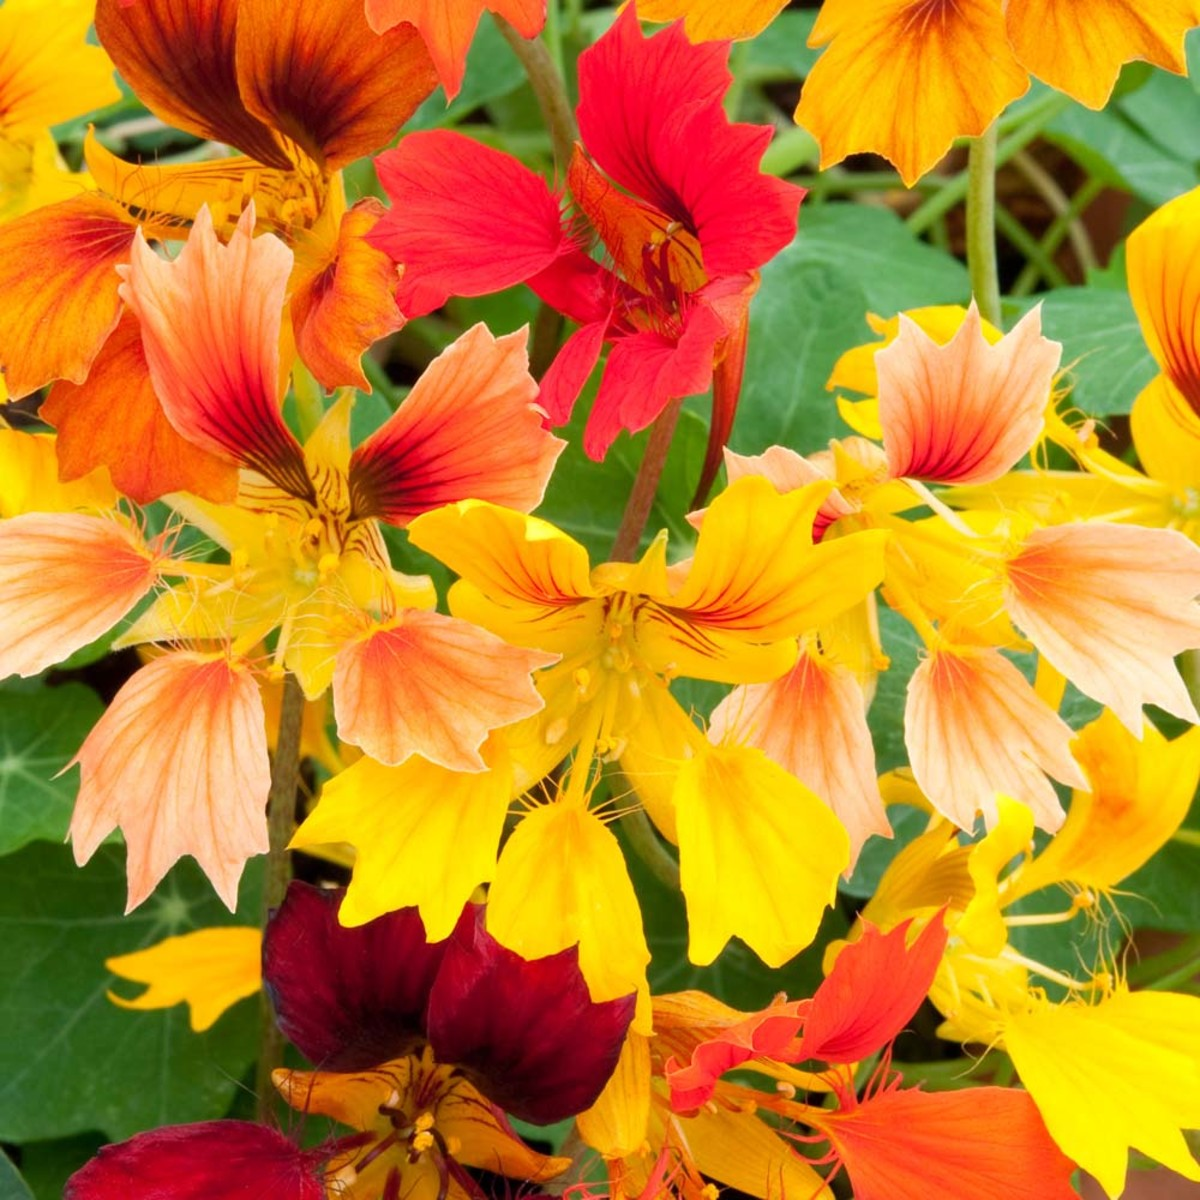 With its edible leaves and bright colors, the 'Flame Thrower' cultivar of nasturtiums is a great pick for most any garden.